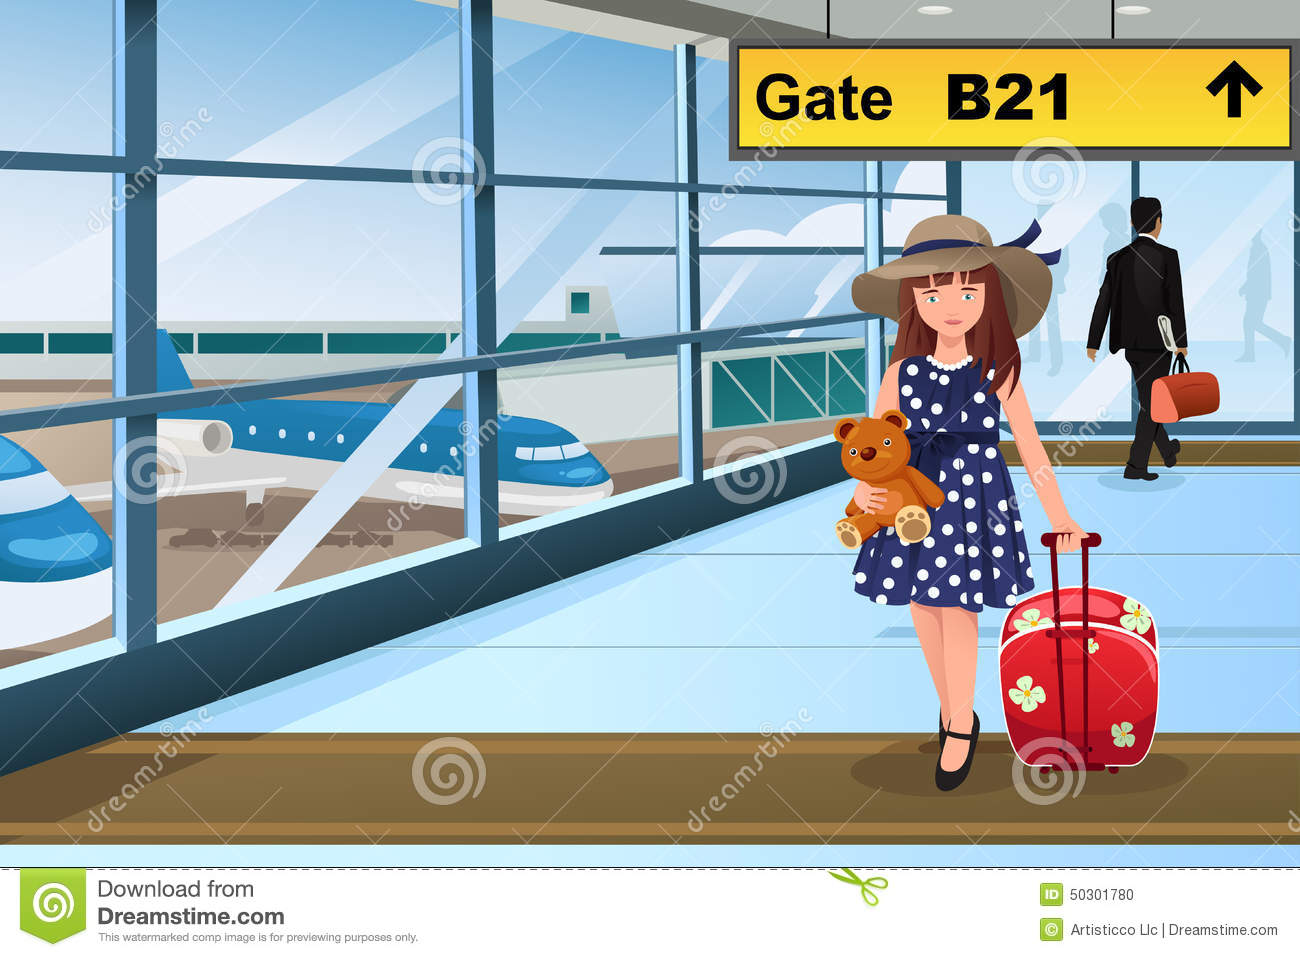 airport safety clipart - photo #31